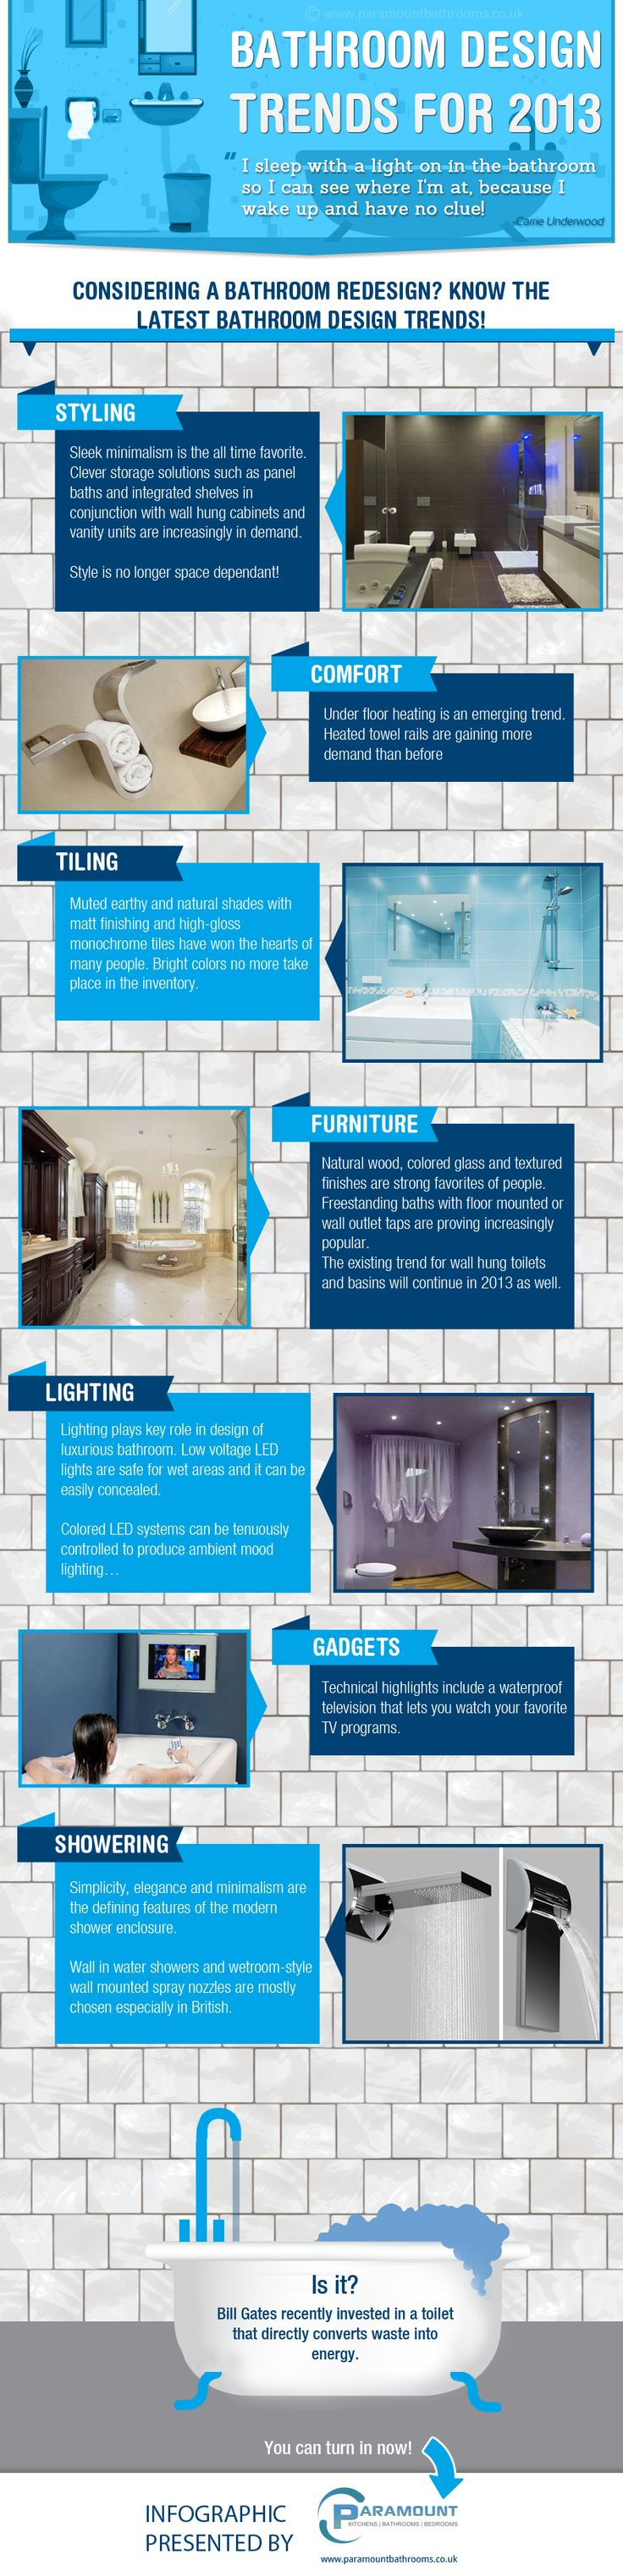 Bathroom remodel spotlight the headland project one week bath - 17 Best Images About Bathroom Remodeling Ideas On Pinterest Bathroom Remodel Boston